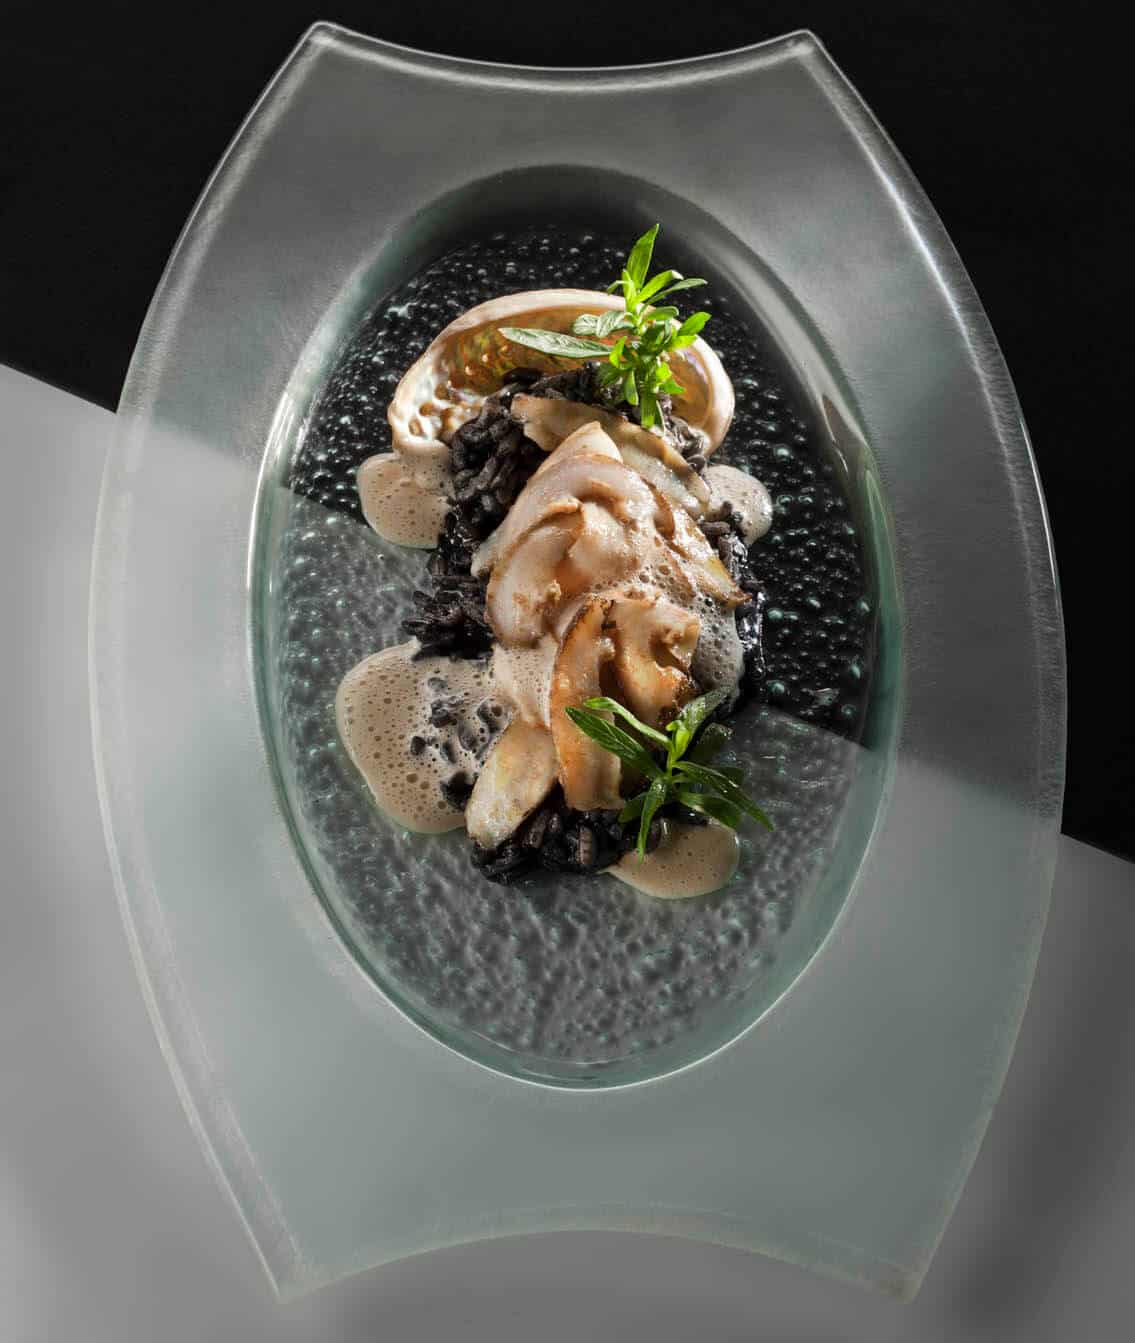 Pan-seared Abalone with Squid-Ink Risotto